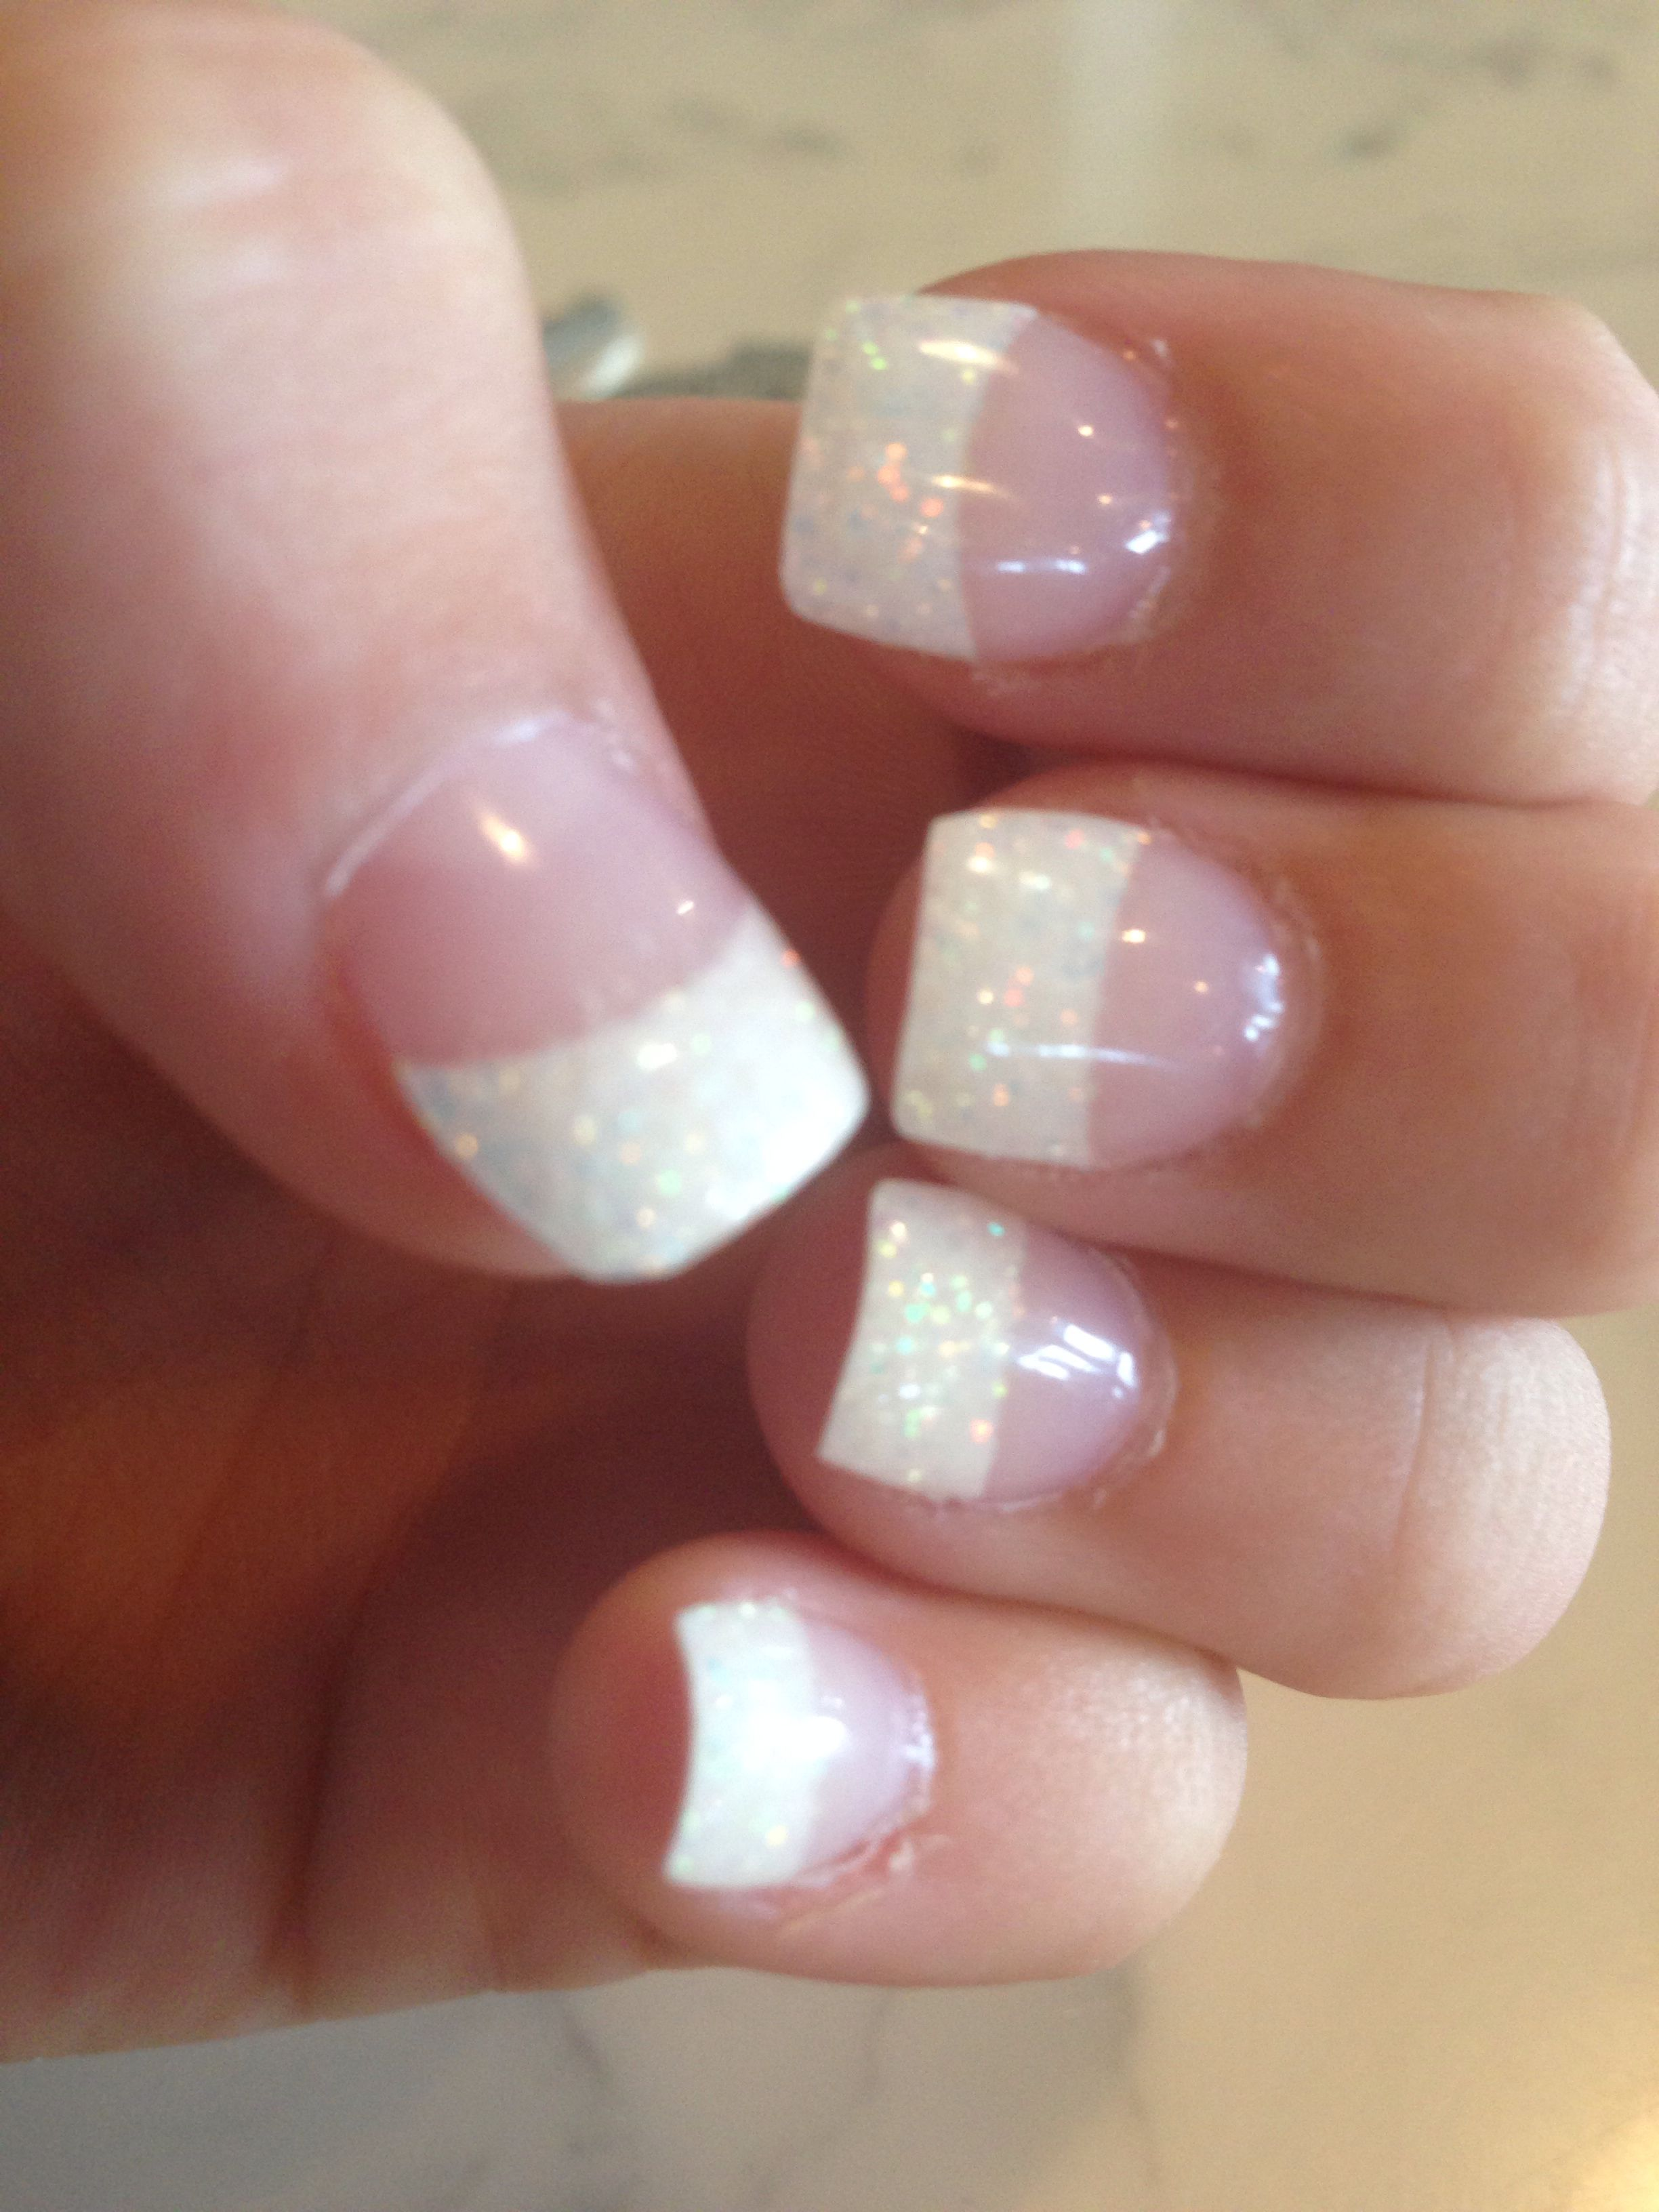 Prom Nails 2014 | Deez Nailz | Pinterest | Nails 2014, Prom nails ...